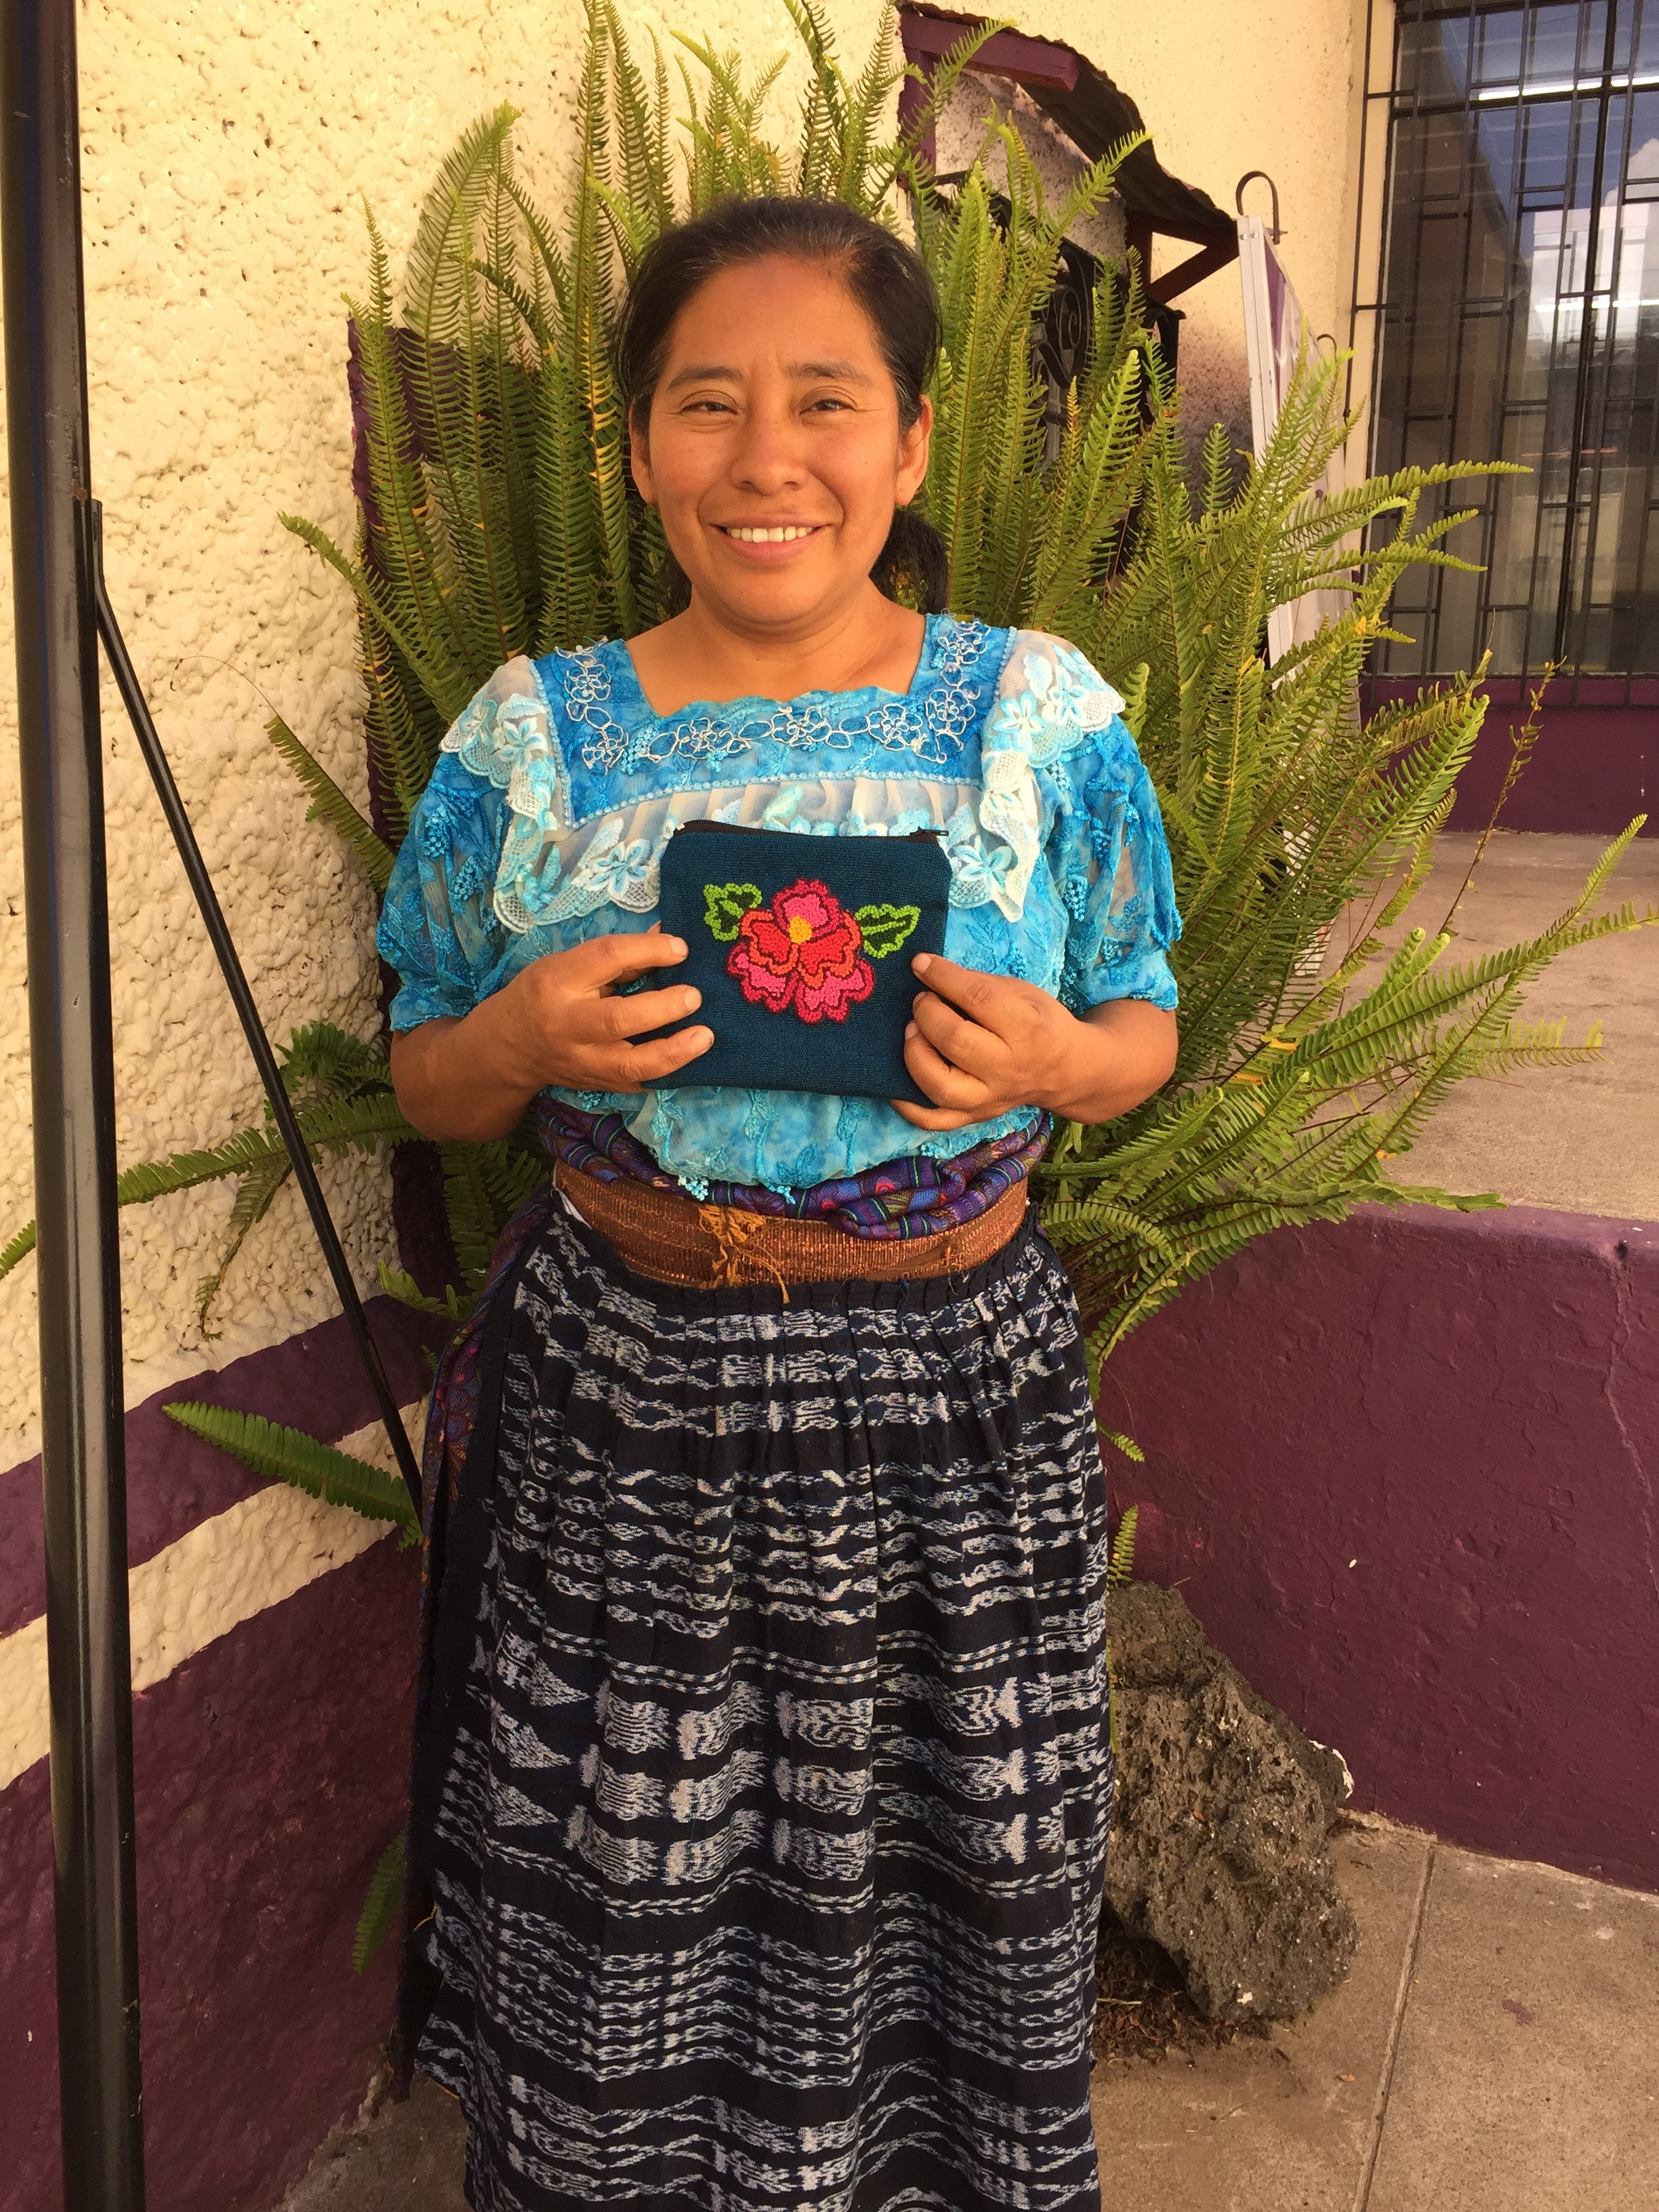 Rosario Yac - Cantel, Quetzaltenango - Friendship Bridge's client for 12 loan cycles.Living in the large department of Quetzaltenango, Rosario embroiders our small zippered pouches. She has one employee.